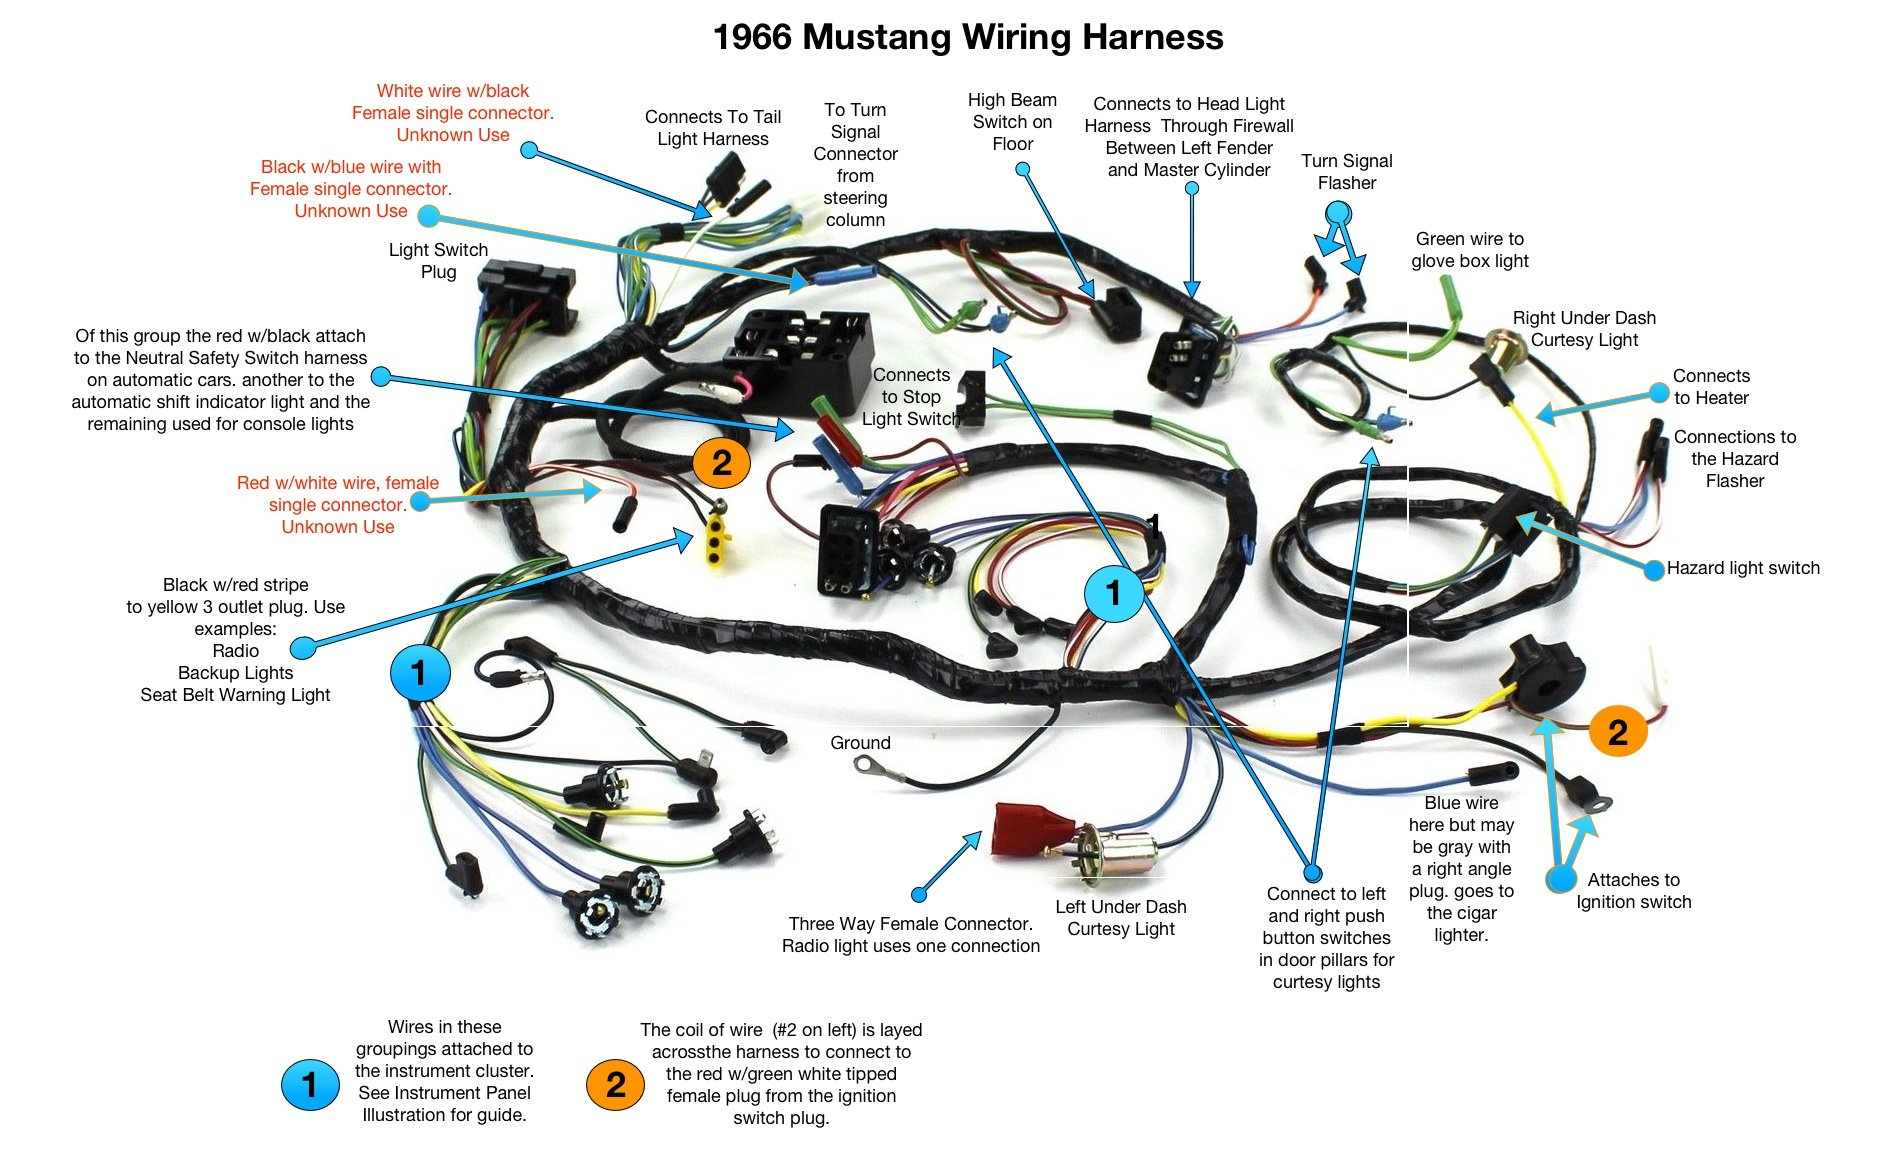 1985 toyota pickup engine wiring harness diagram hummvi wiring harness engine scamatics 66 wiring harness diagram - ford mustang forum #13